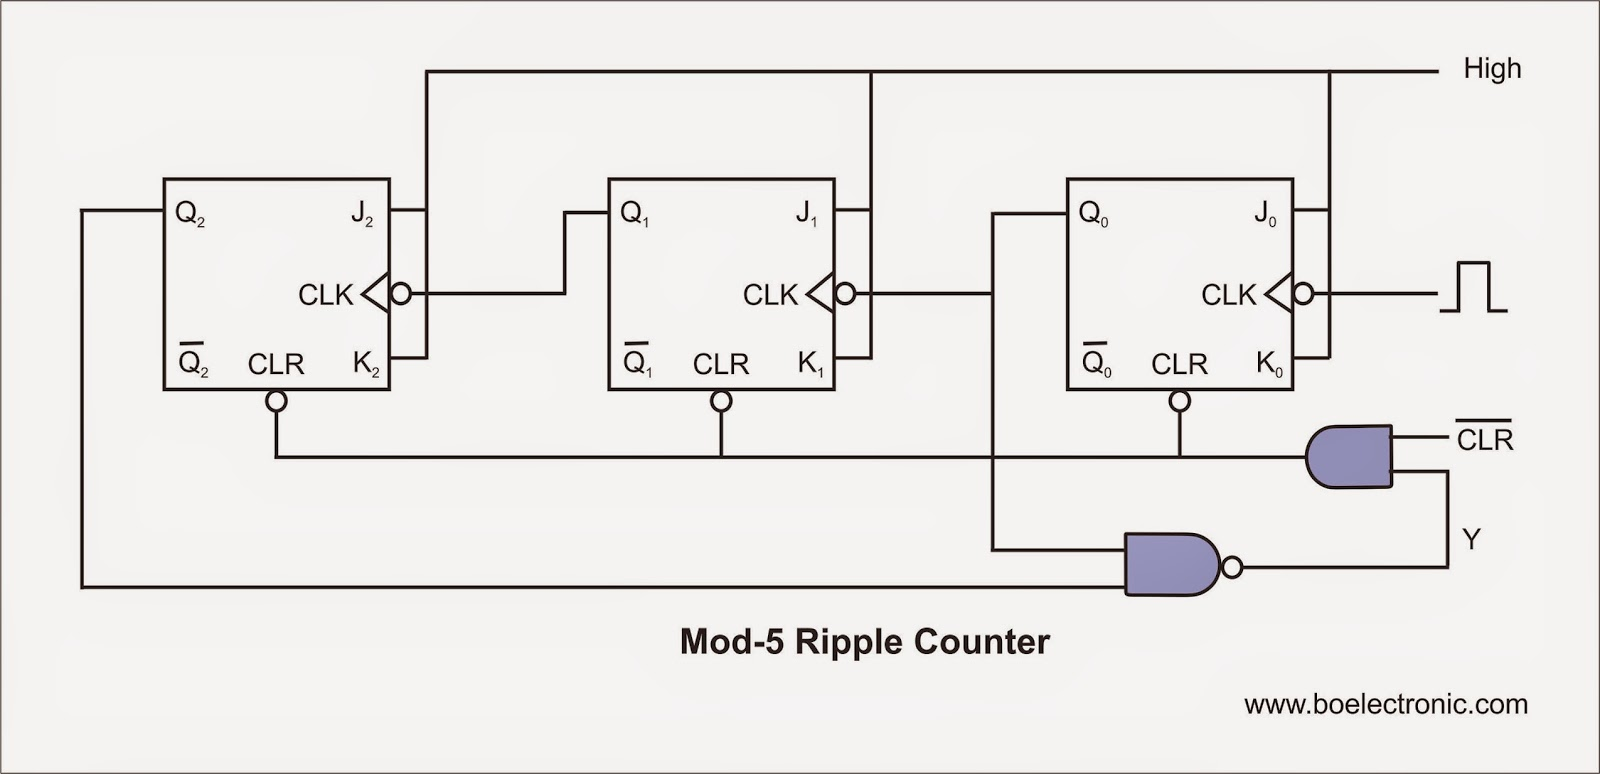 hight resolution of mod 6 counter logic diagram